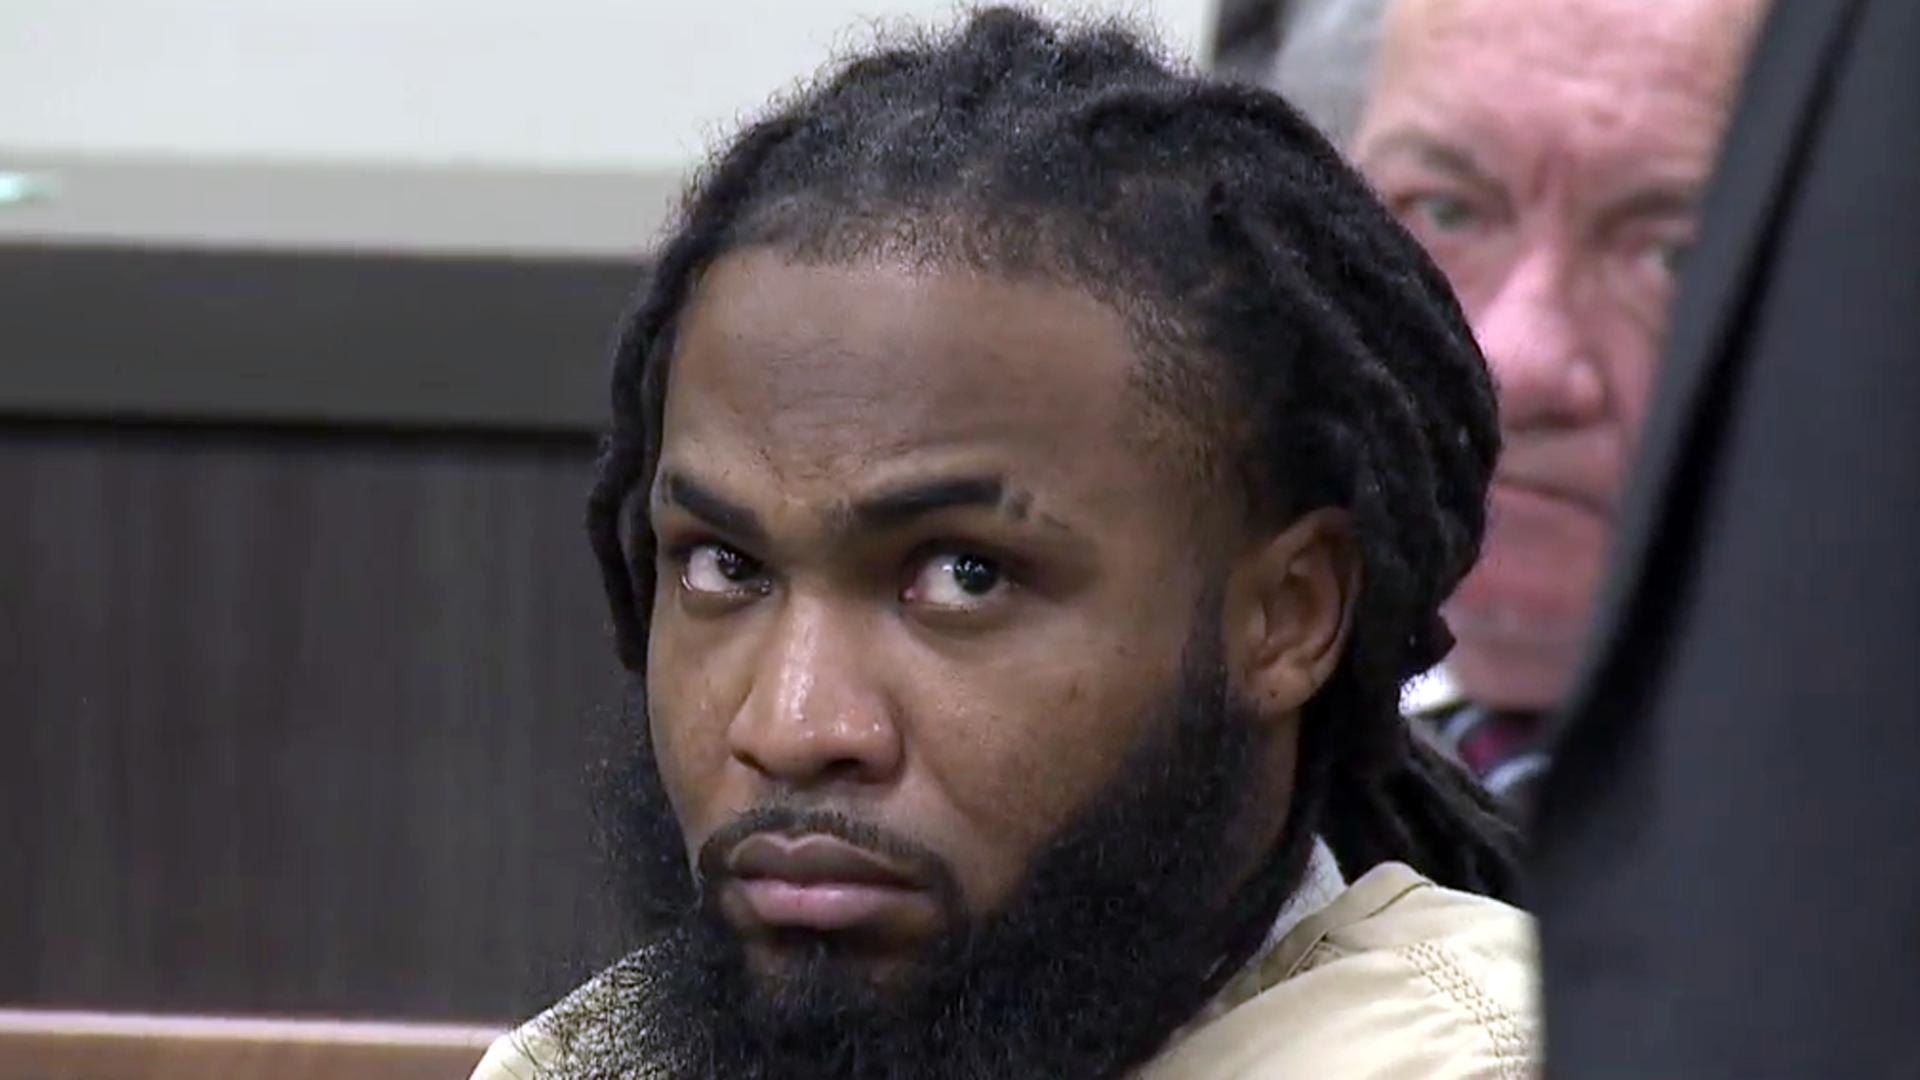 Judge approves death penalty trial for final defendant in